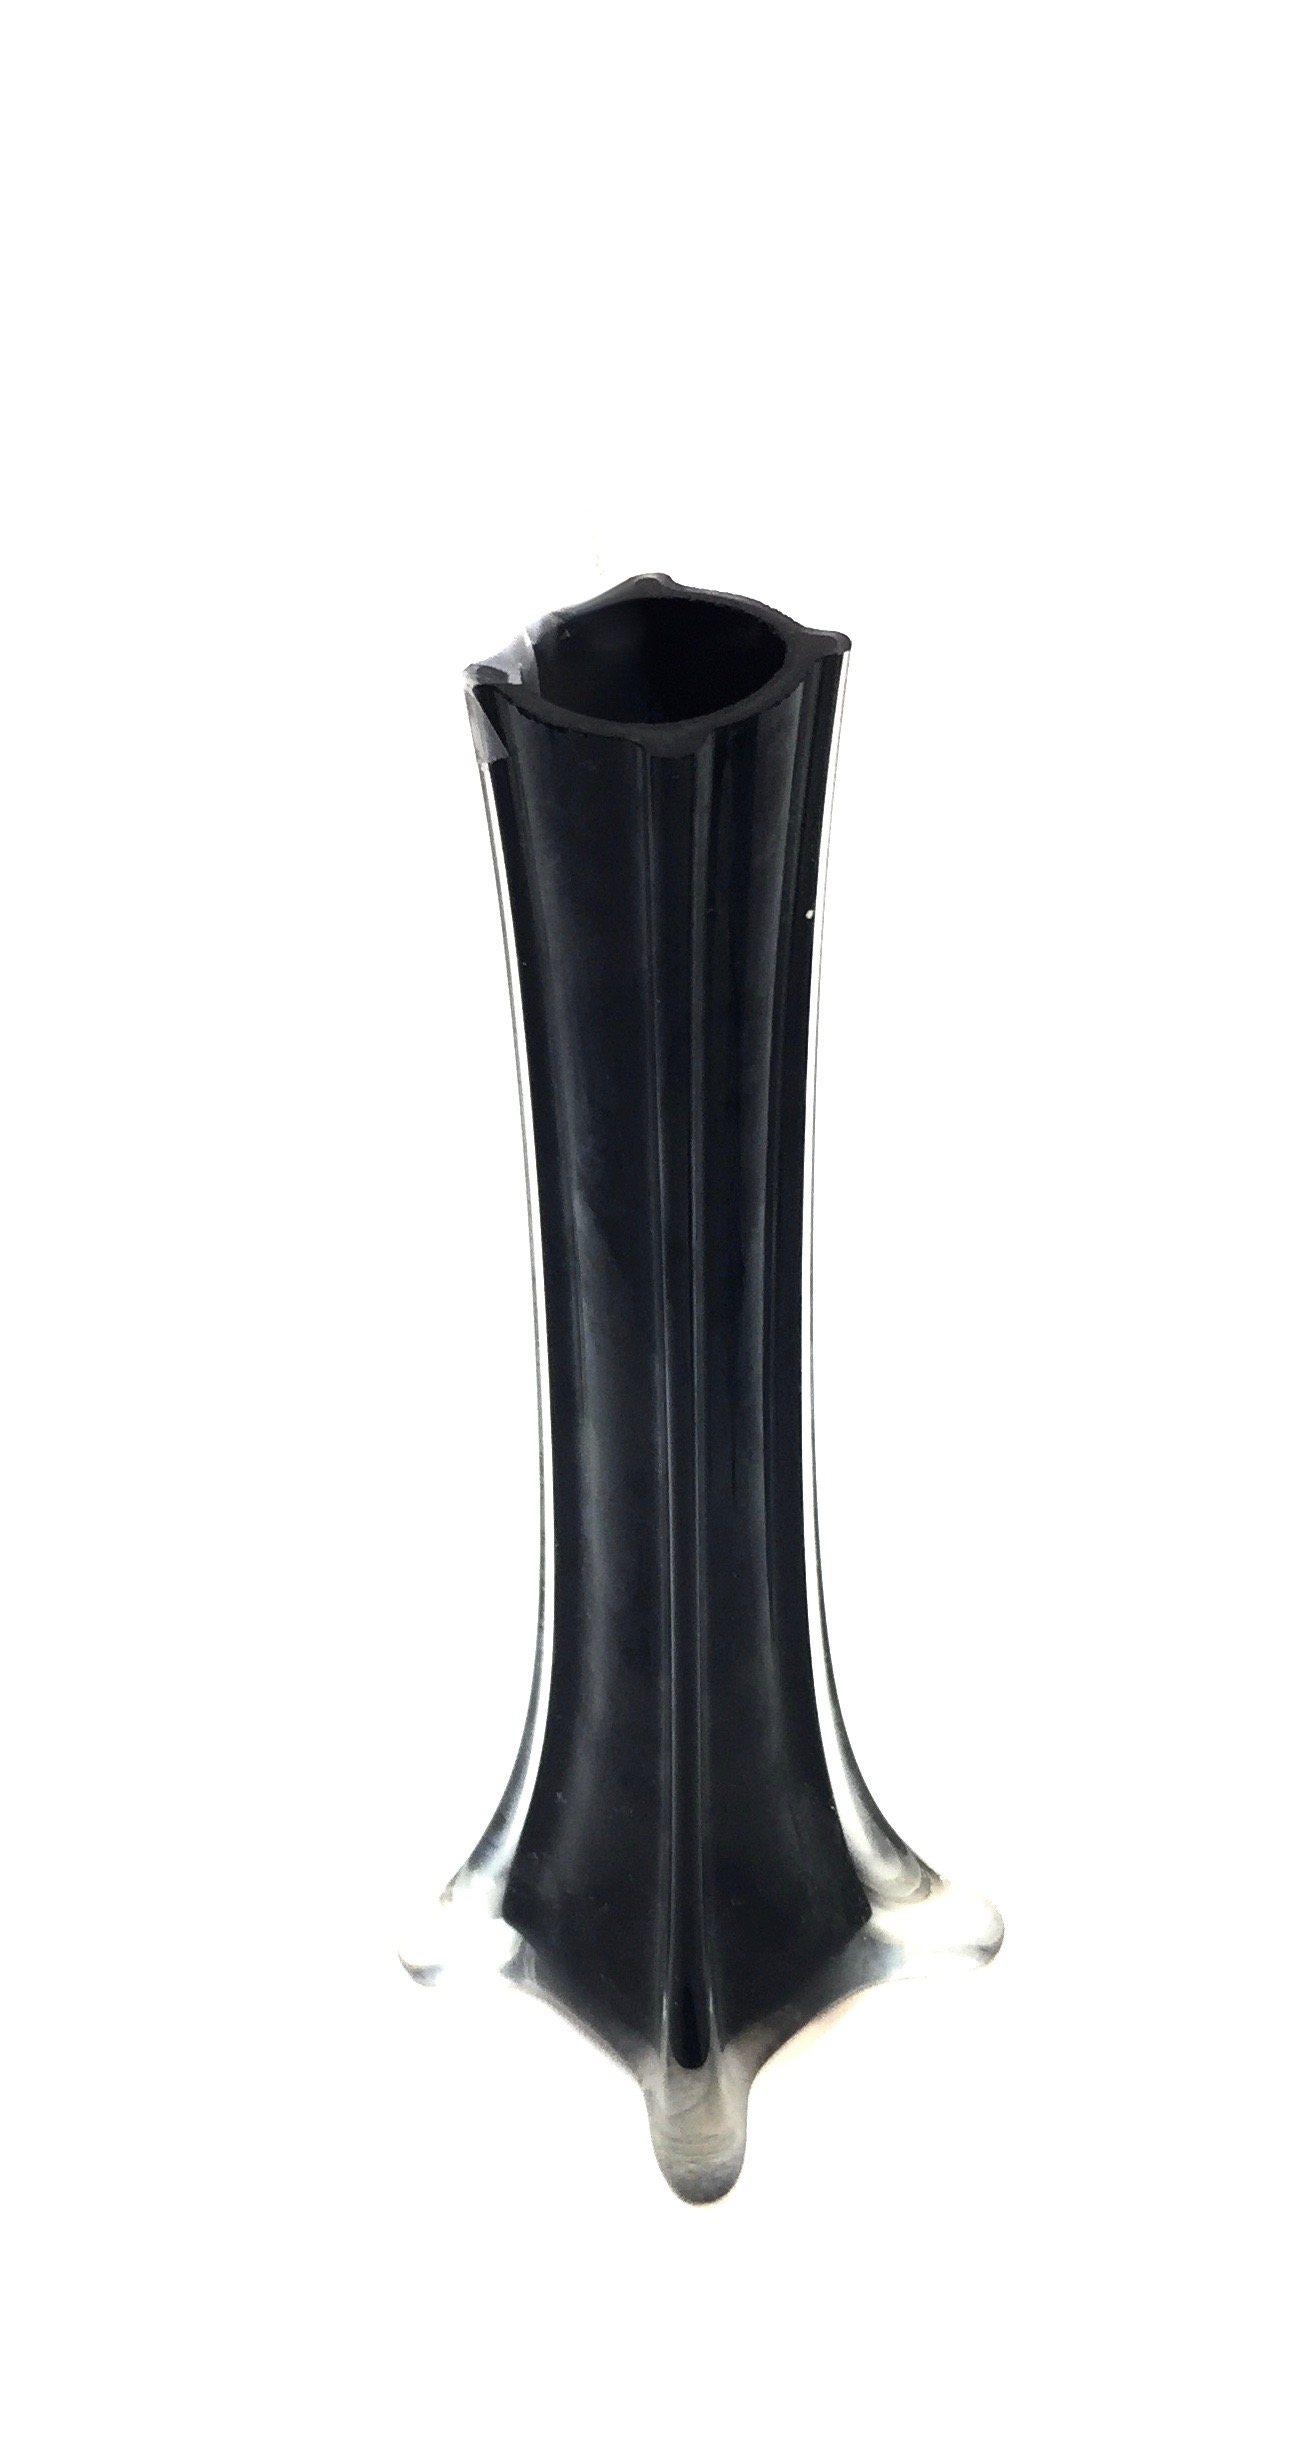 Glass Tower Vase Black 8""